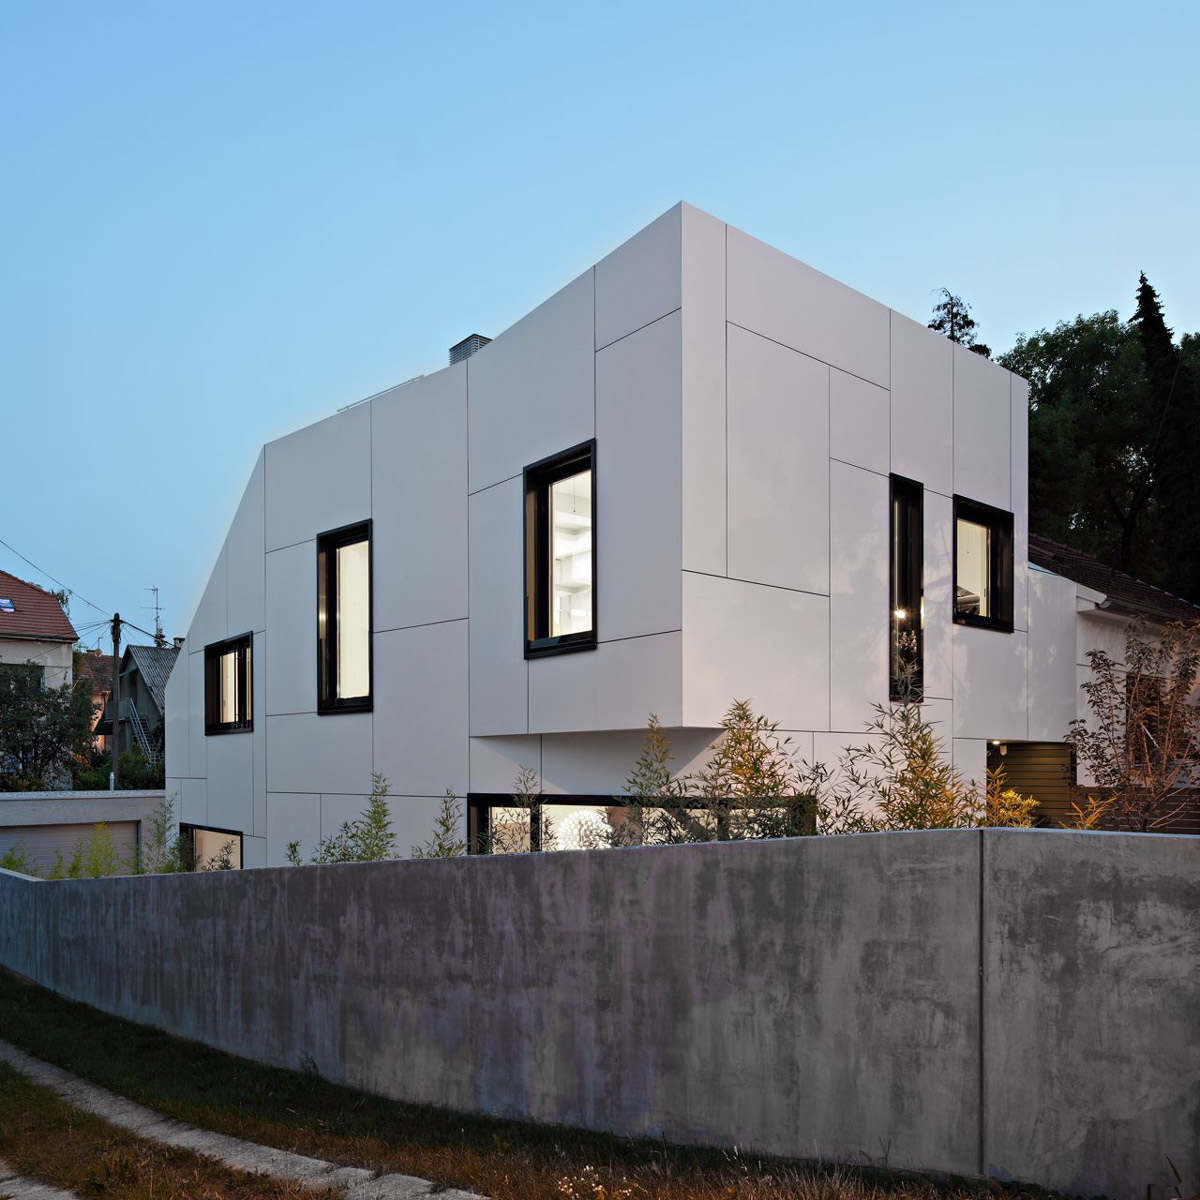 Garden Wall, A+A House in Zagreb, Croatia by DVA Arhitekta